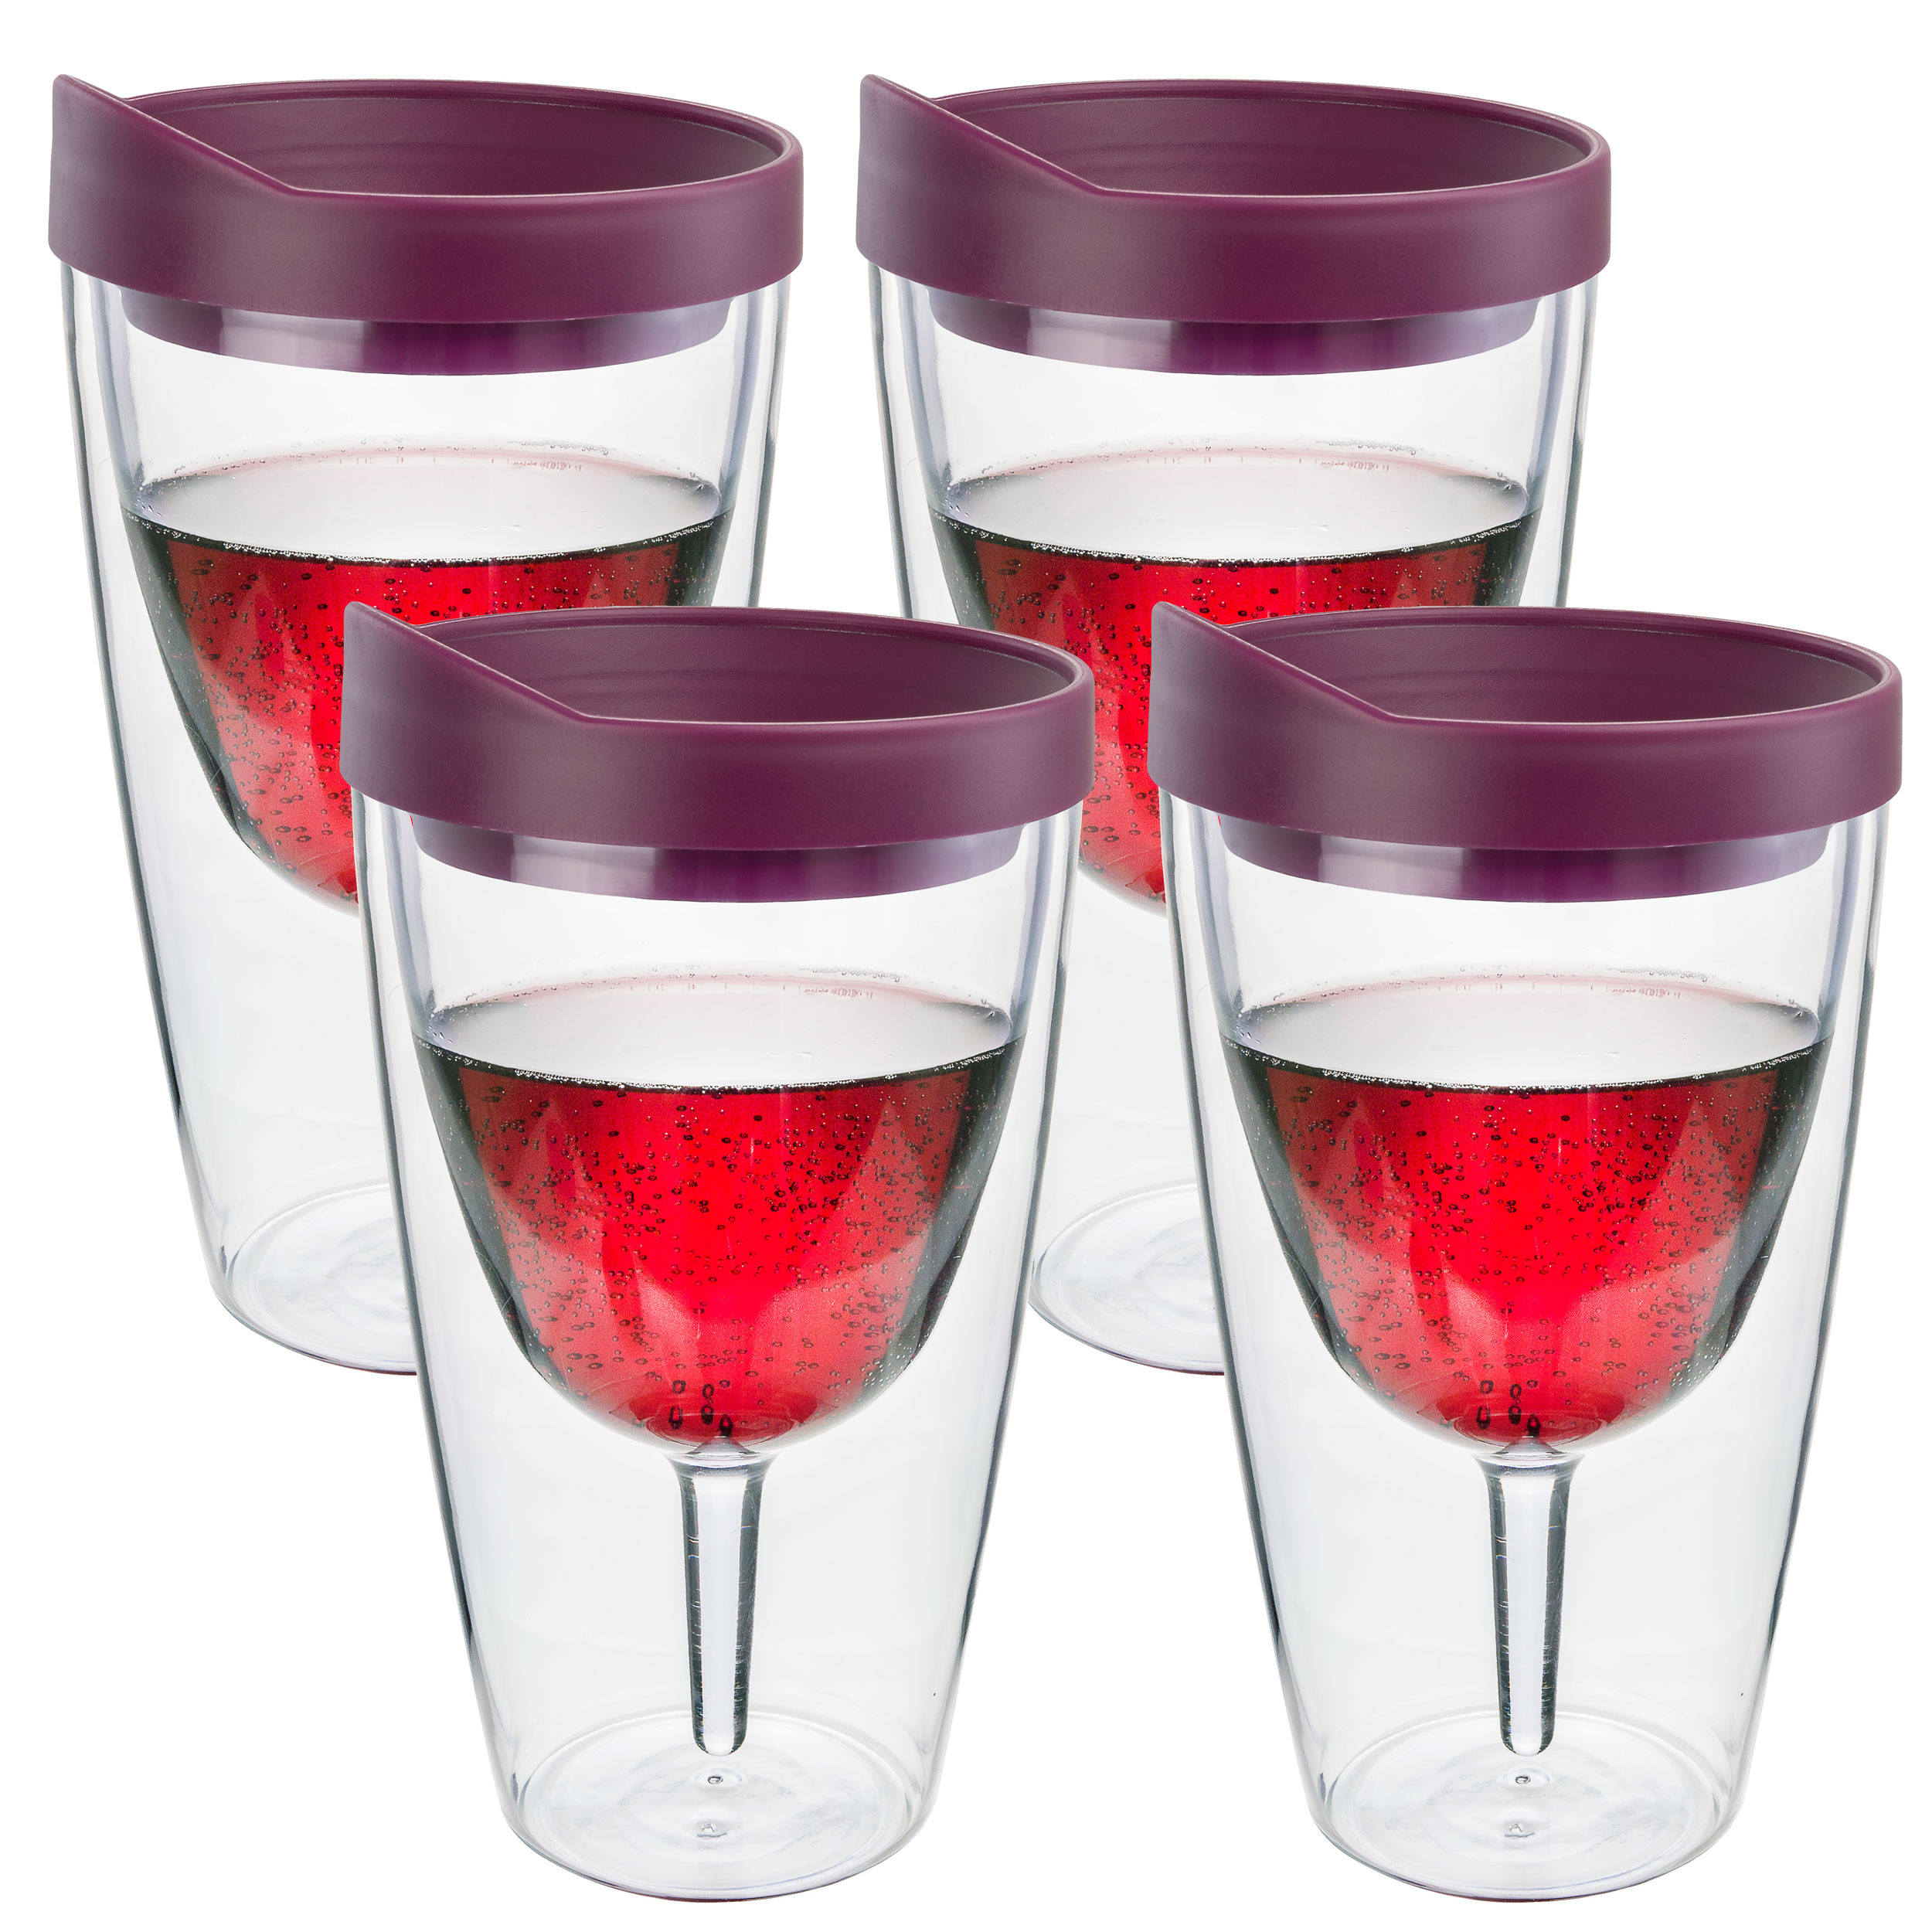 Merlot Insulated Wine Tumbler - Double Wall Acrylic 4 Pack